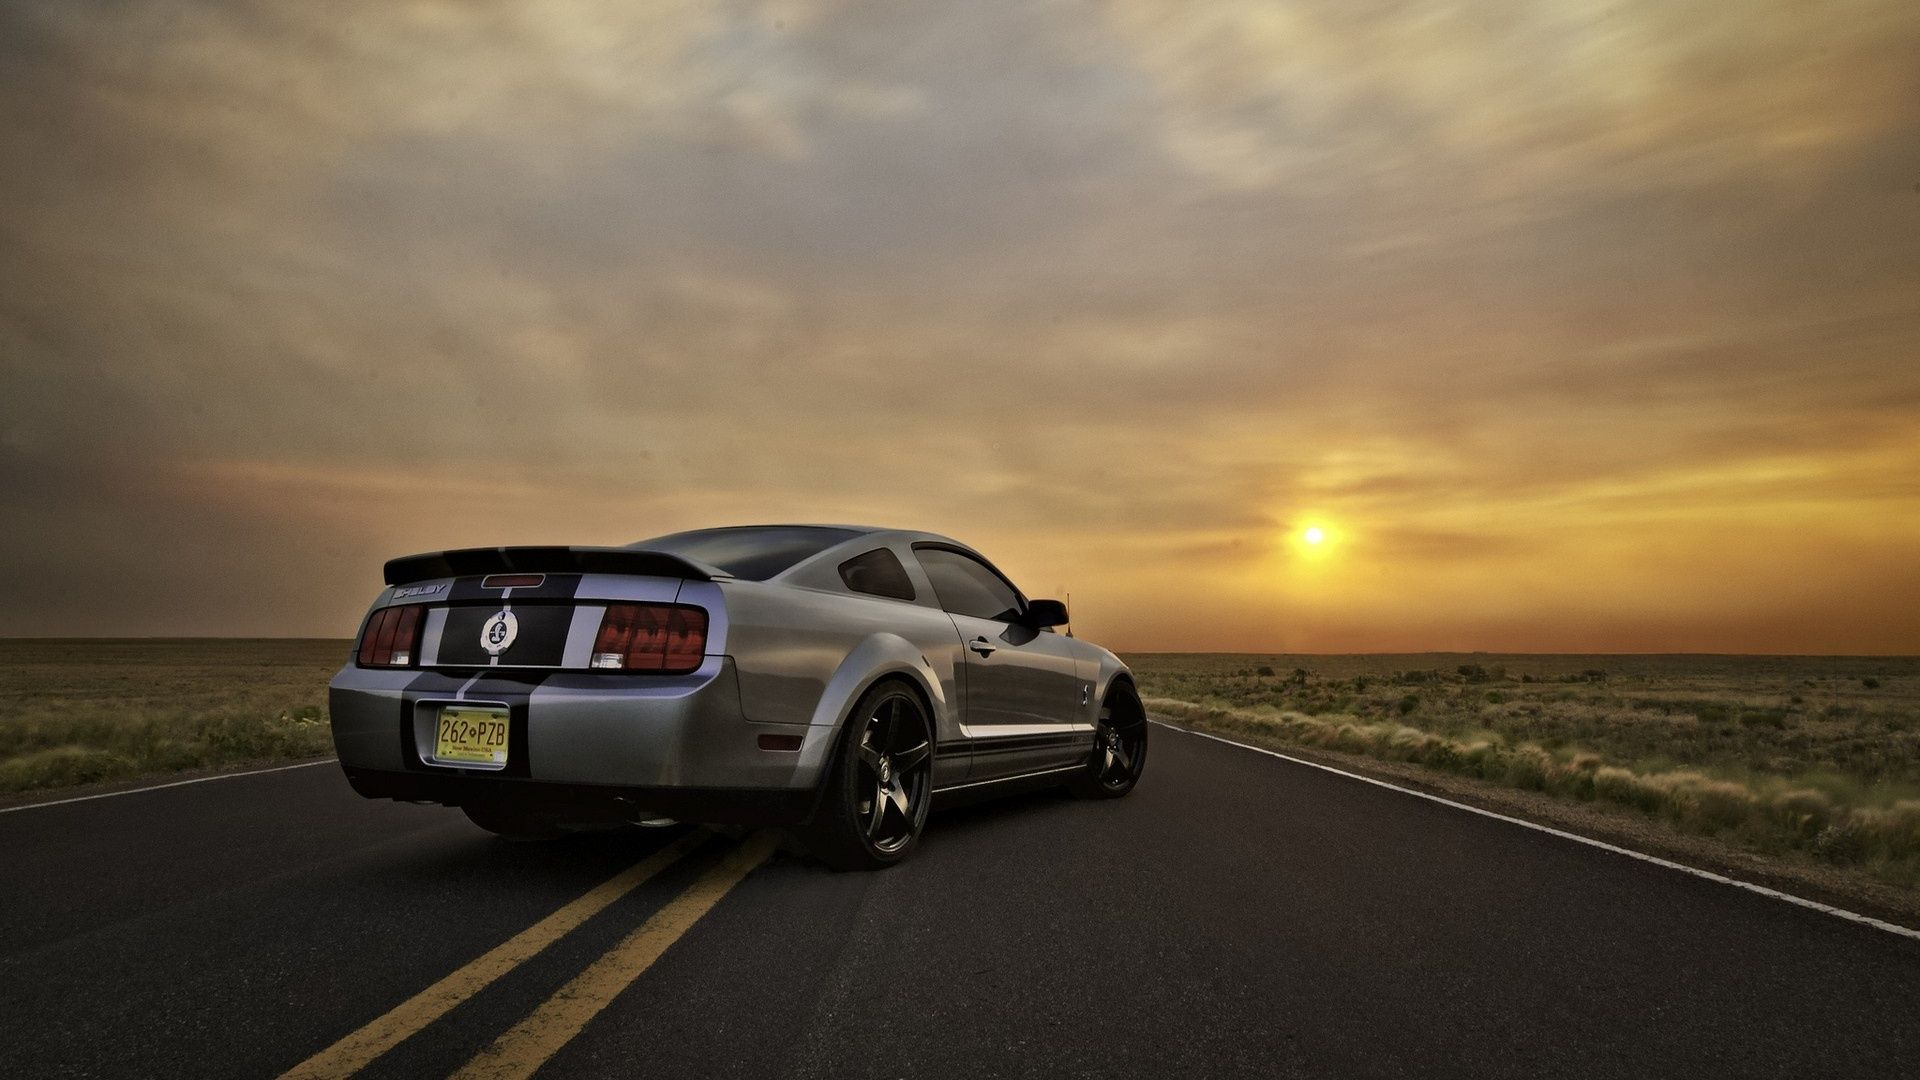 Silver Ford Mustang Sunset Hd Wallpaper At Wallpapersmap Com Mustang Wallpaper Ford Mustang Wallpaper Ford Mustang